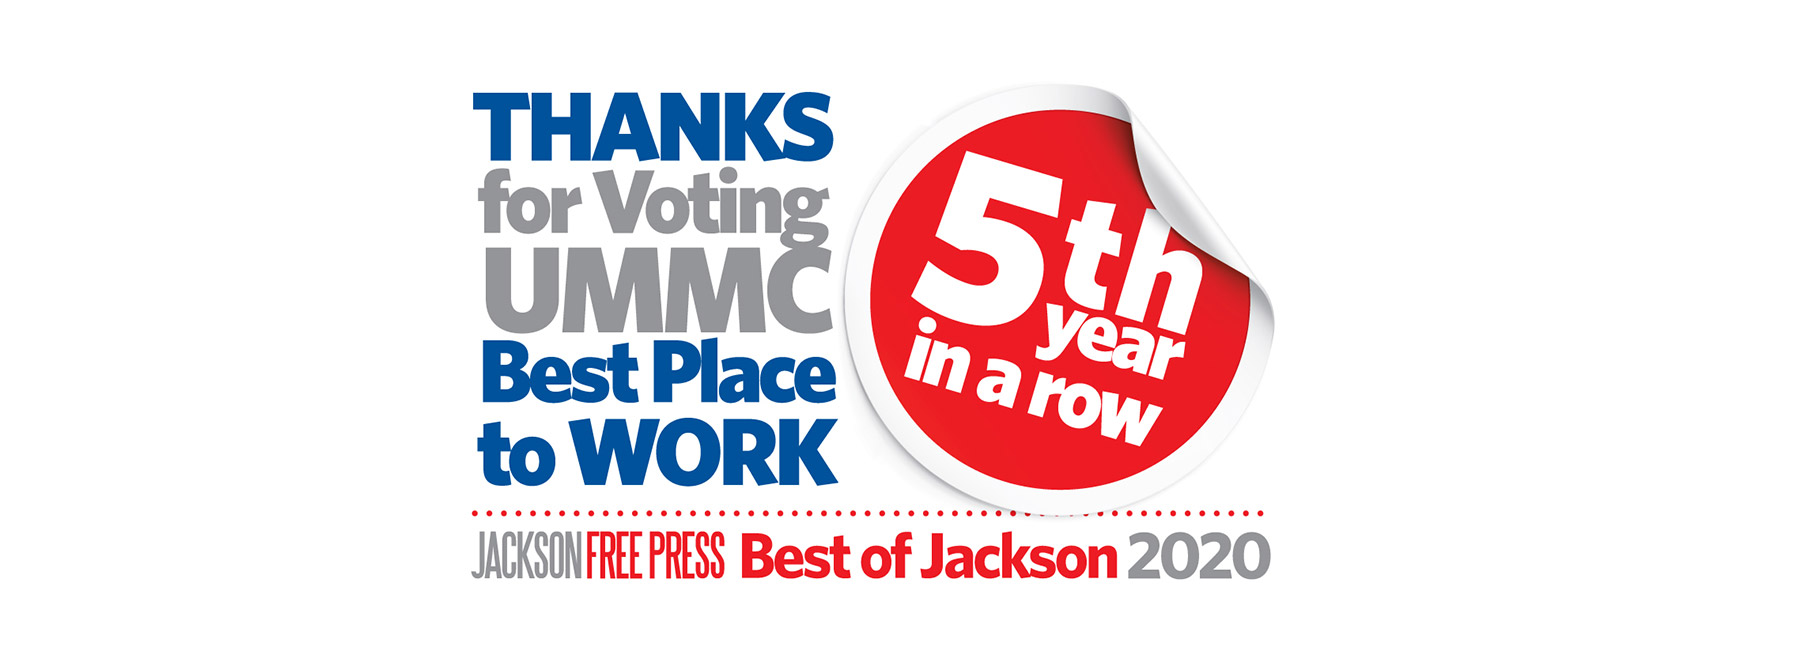 UMMC voted Best Place to Work